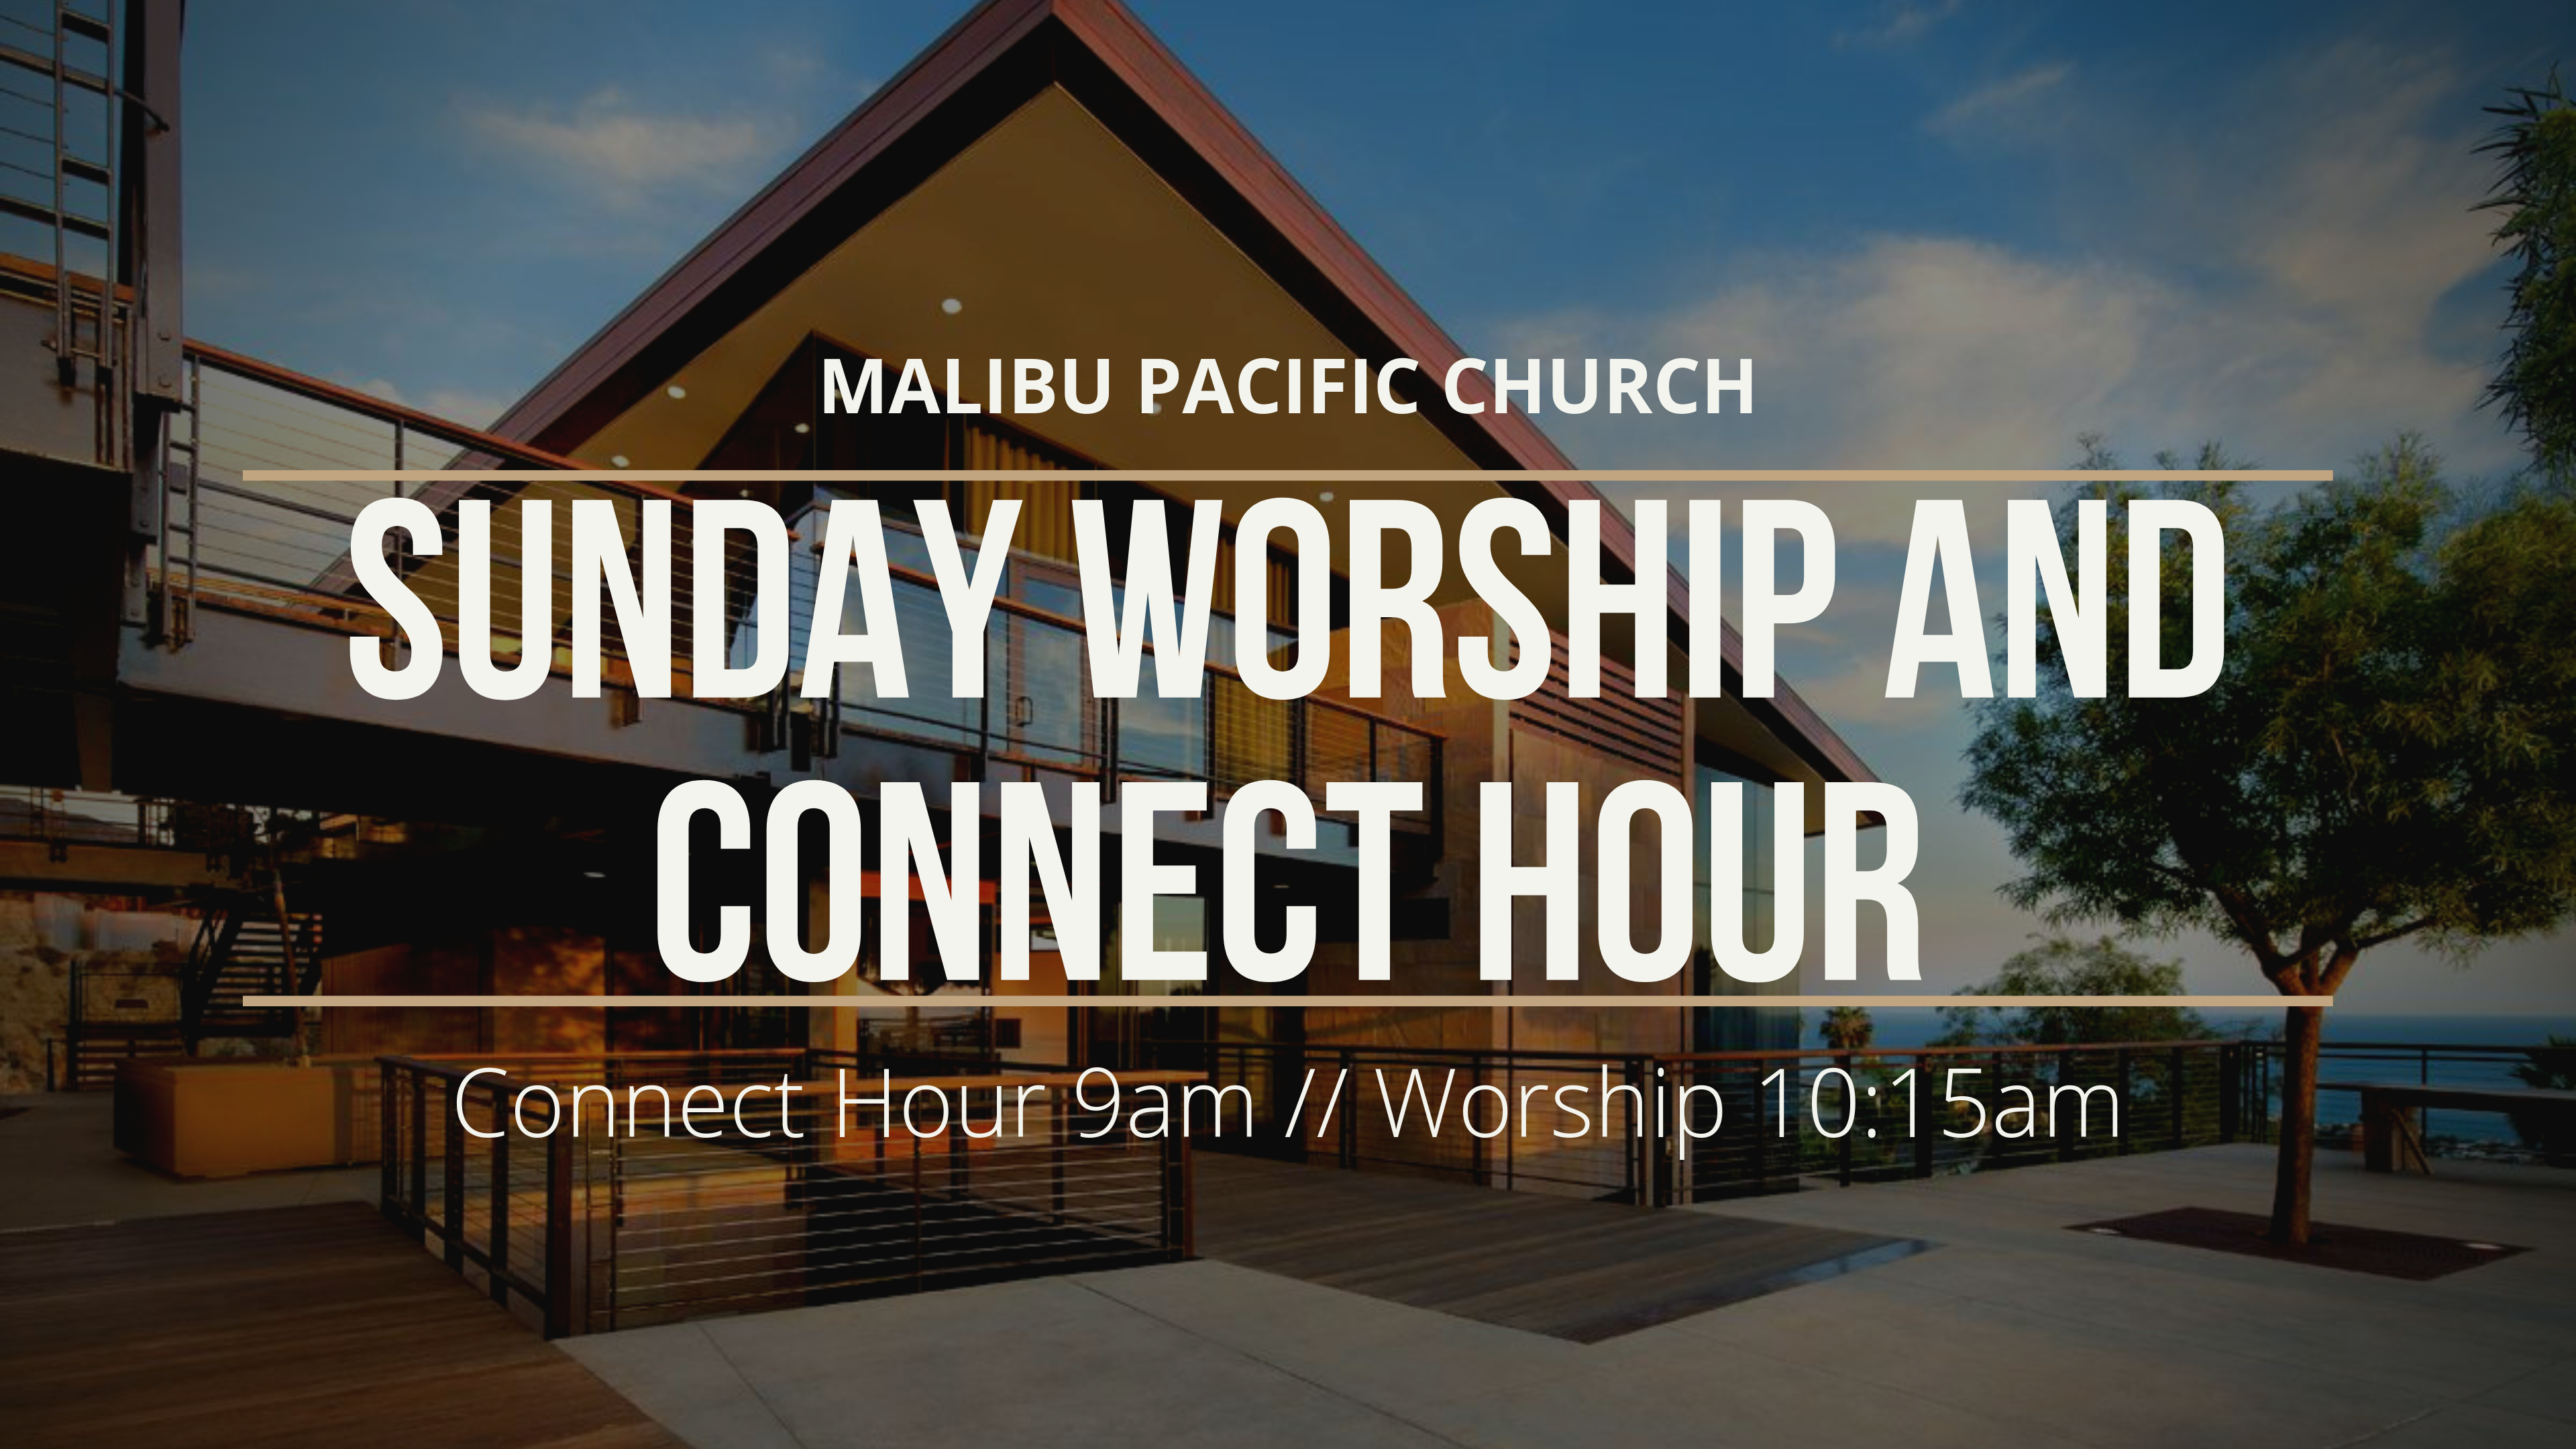 Sunday Worship Featured Image image